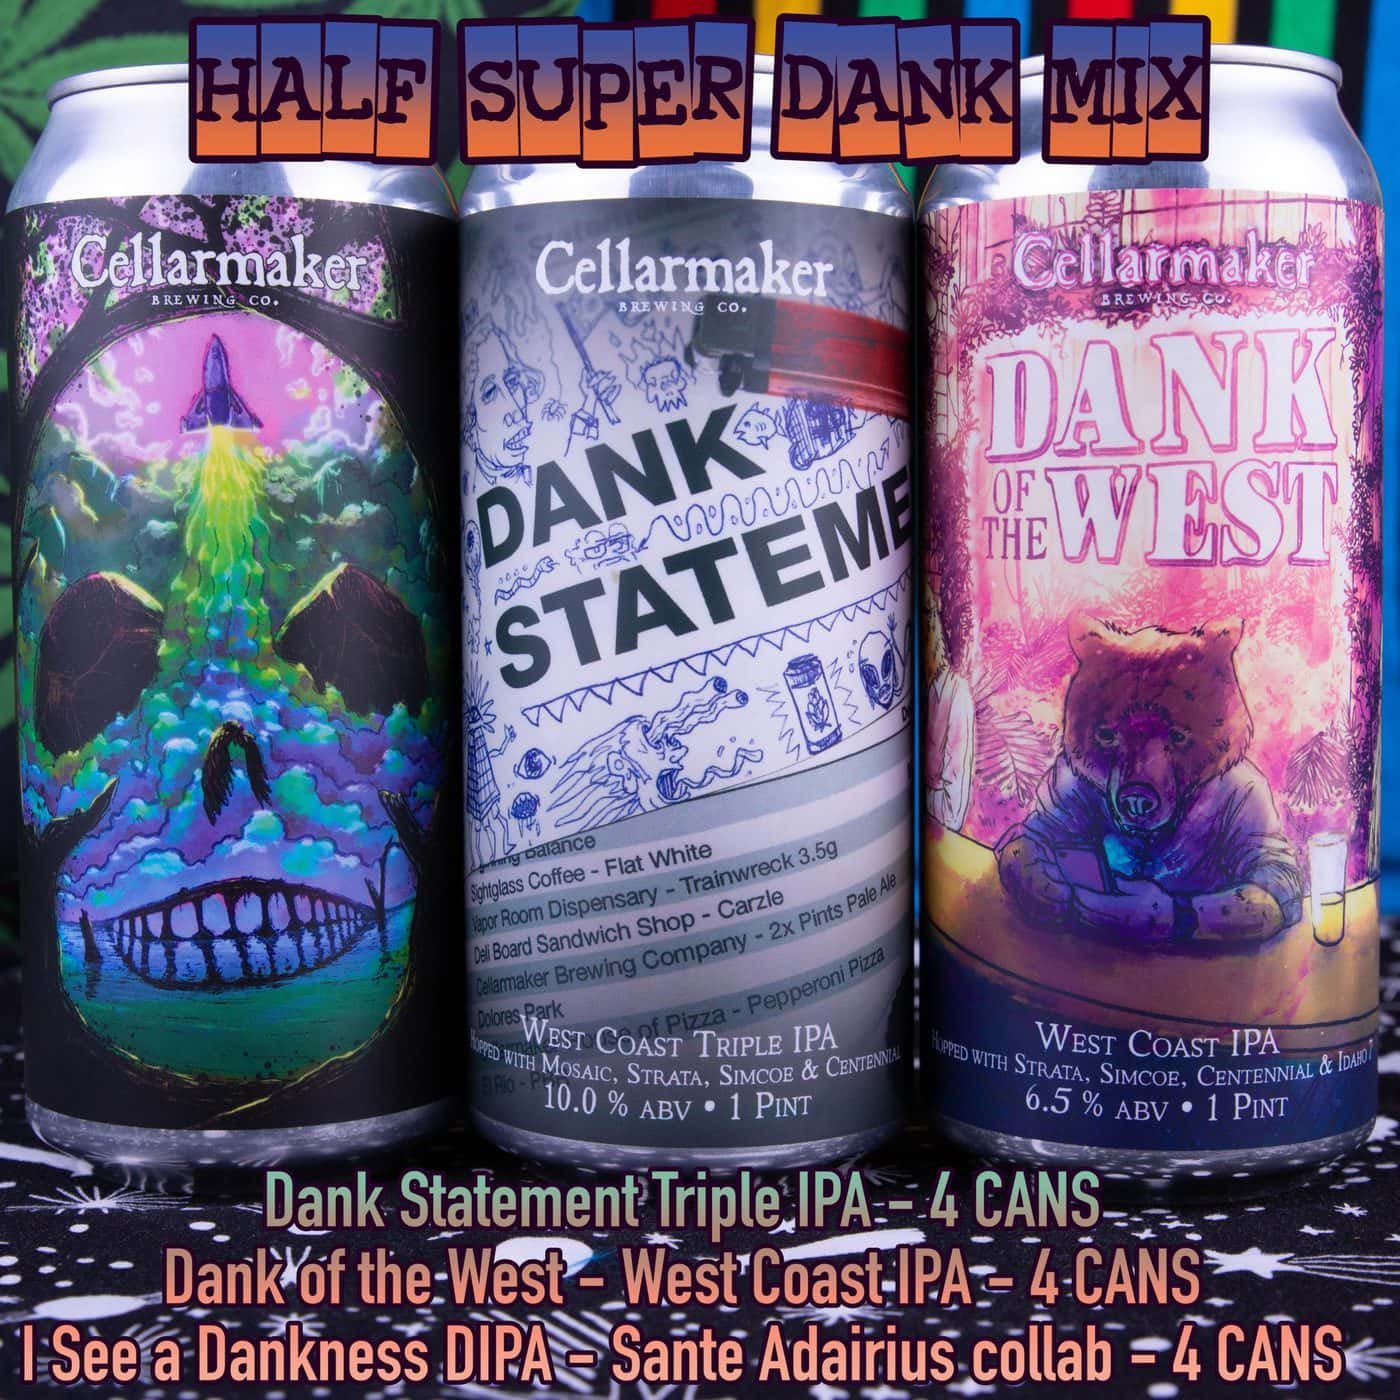 12 CANS Half SUPER DANK MIX – 4 Dank Statement TIPA, 4 I See A Dankness DIPA – Sante Adairius Collab, 4 Dank Of The West  IPA- Shipping Out Tuesday 4/13 For Next Day Delivery*